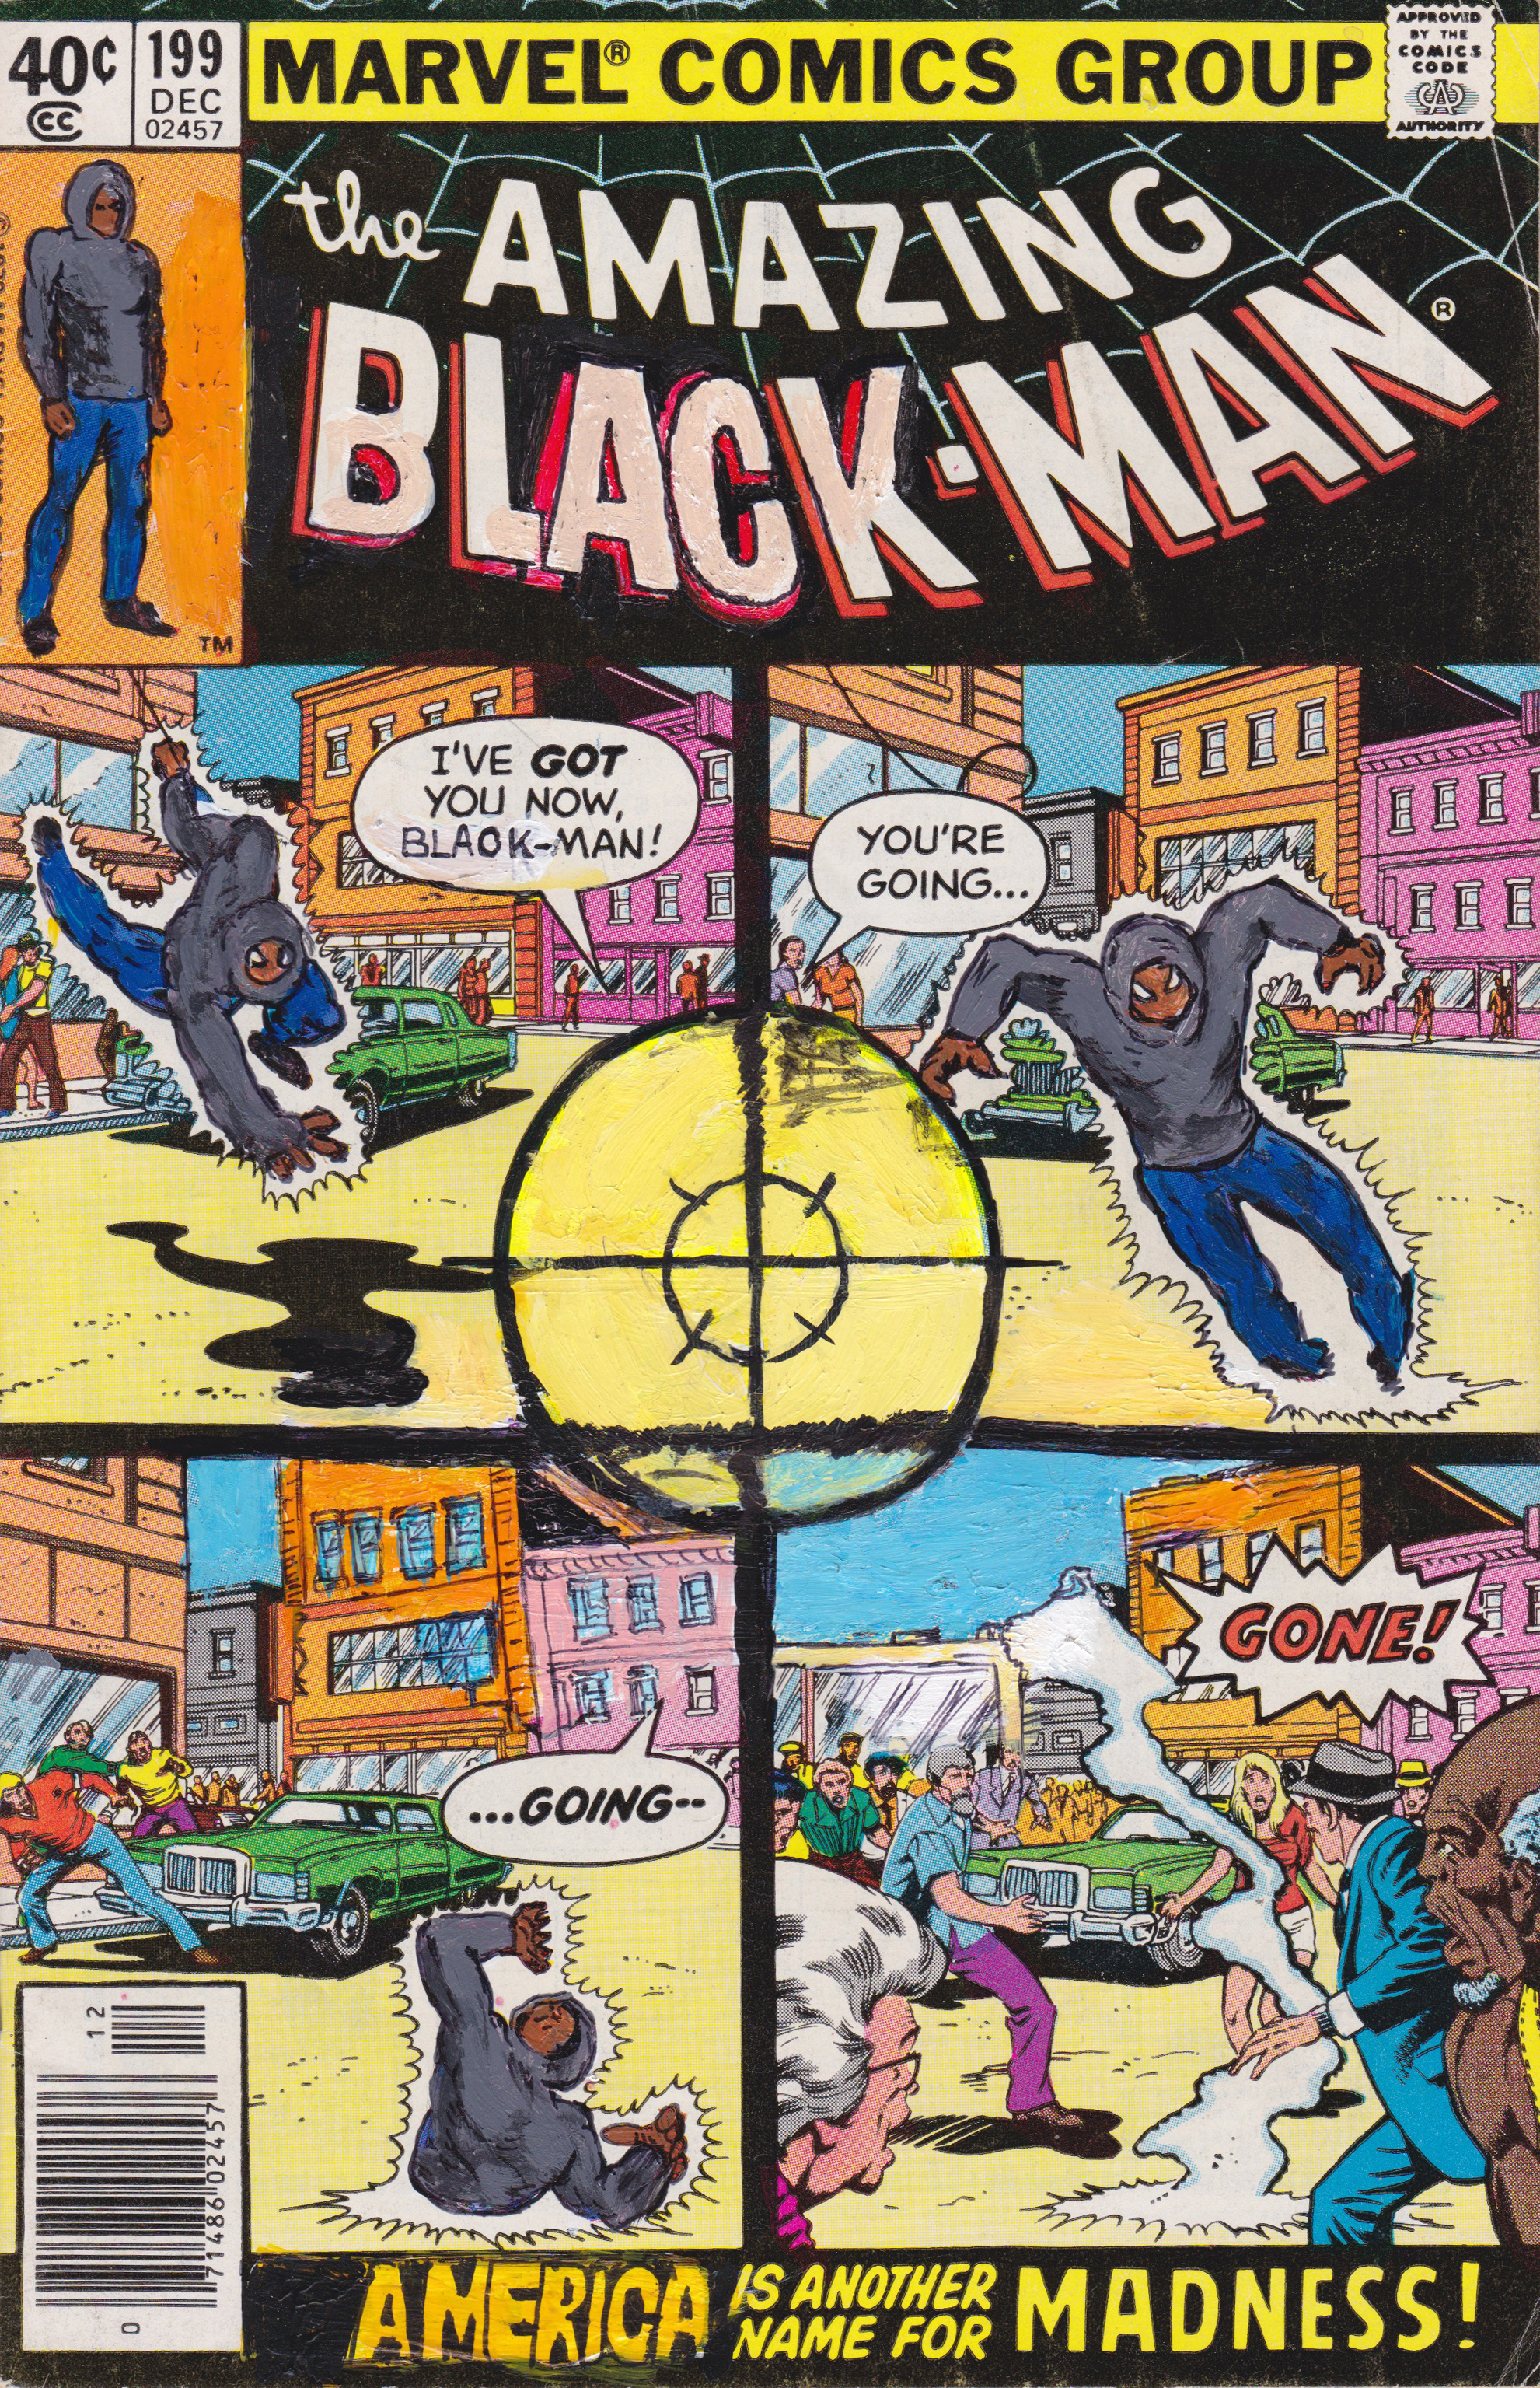 Kumasi J. Barnett  The Amazing Black-Man #199 America is Another Name for Madness!  2019 Acrylic, marker, pen and oil marker on comic book 9 3/4h x 6 1/4w inches KB-215